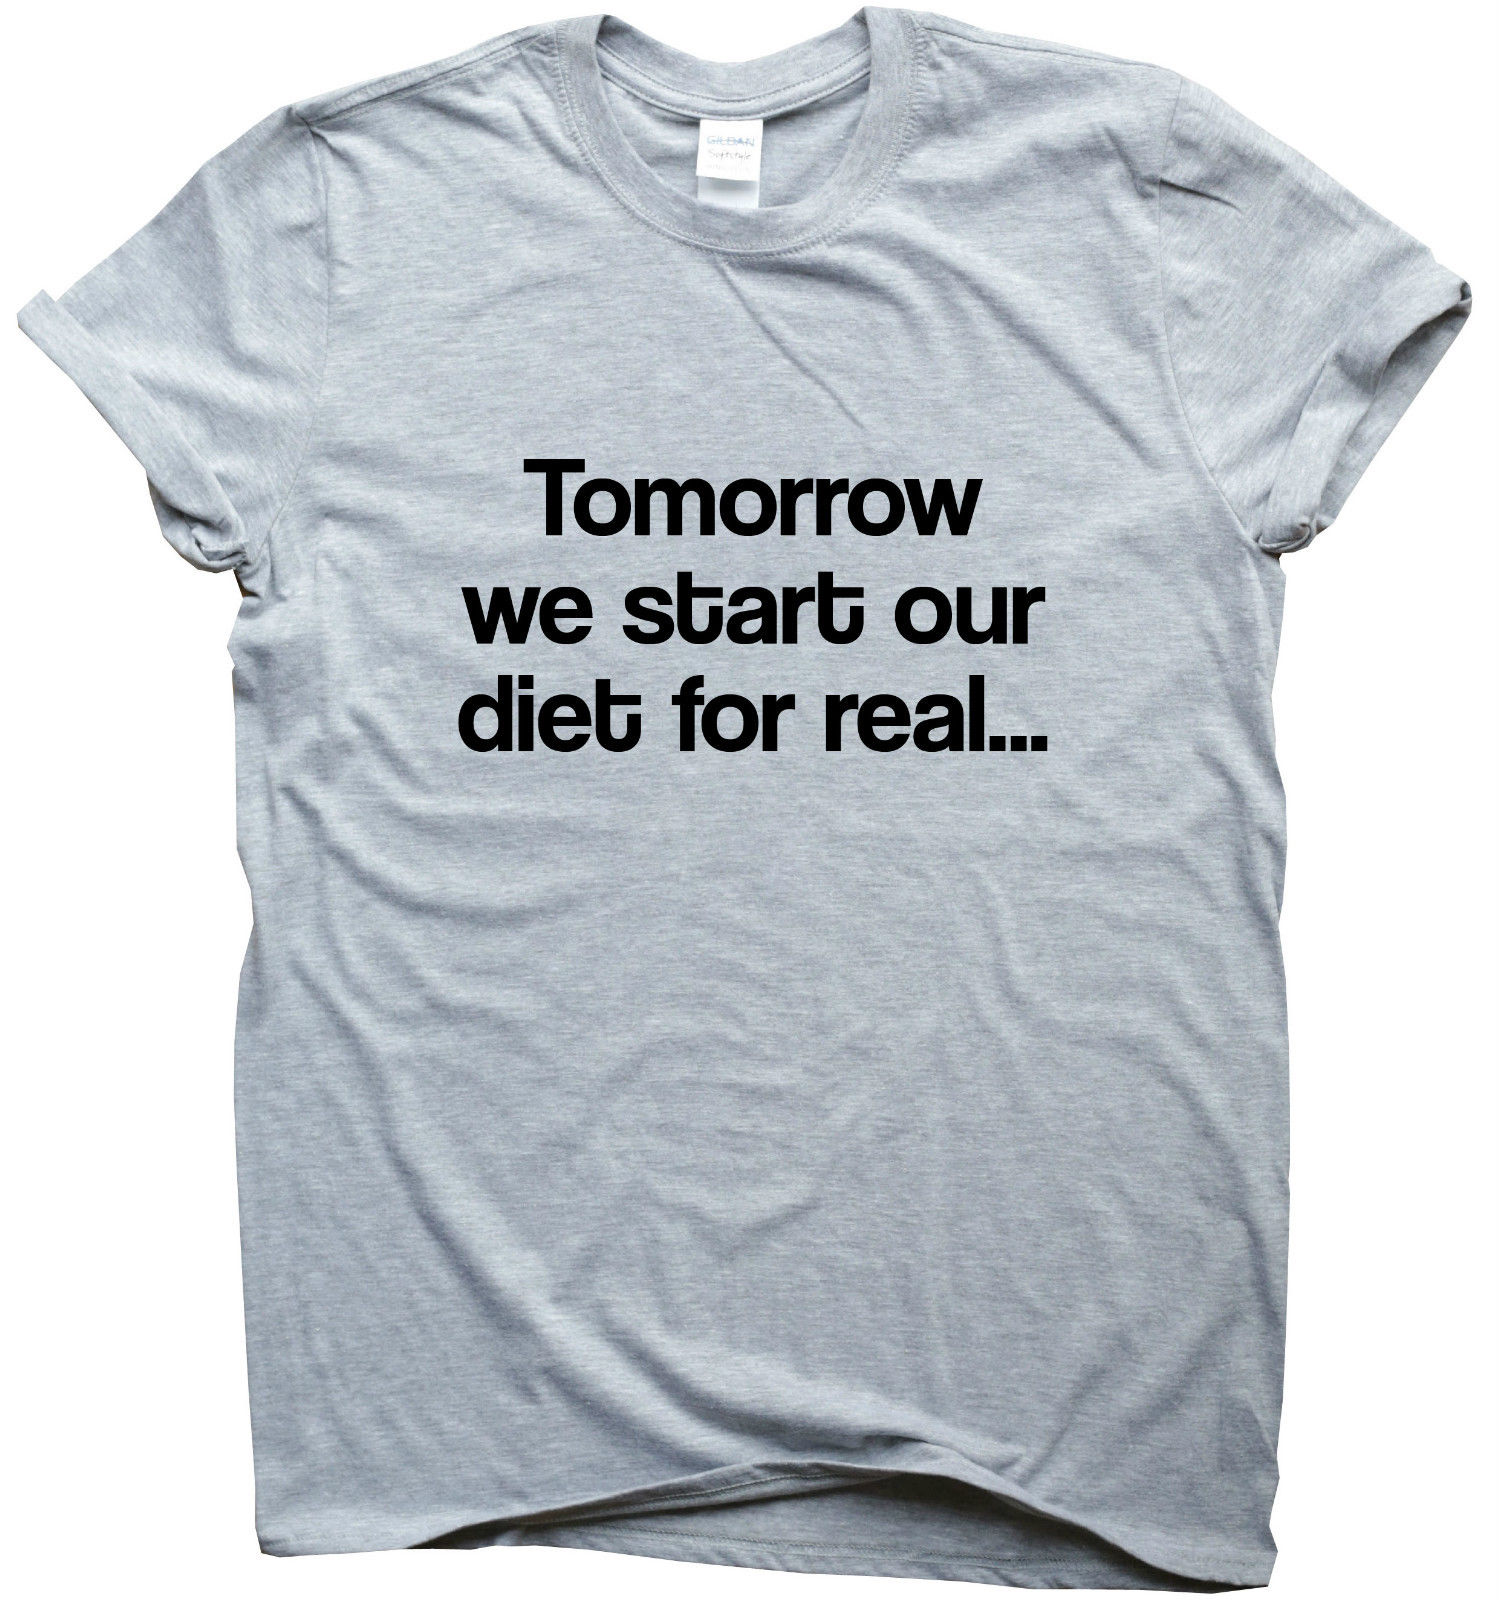 Tomorrow We Diet For Real funny gym T-shirt womens mens training humour workout 2018 Newest Fashion image